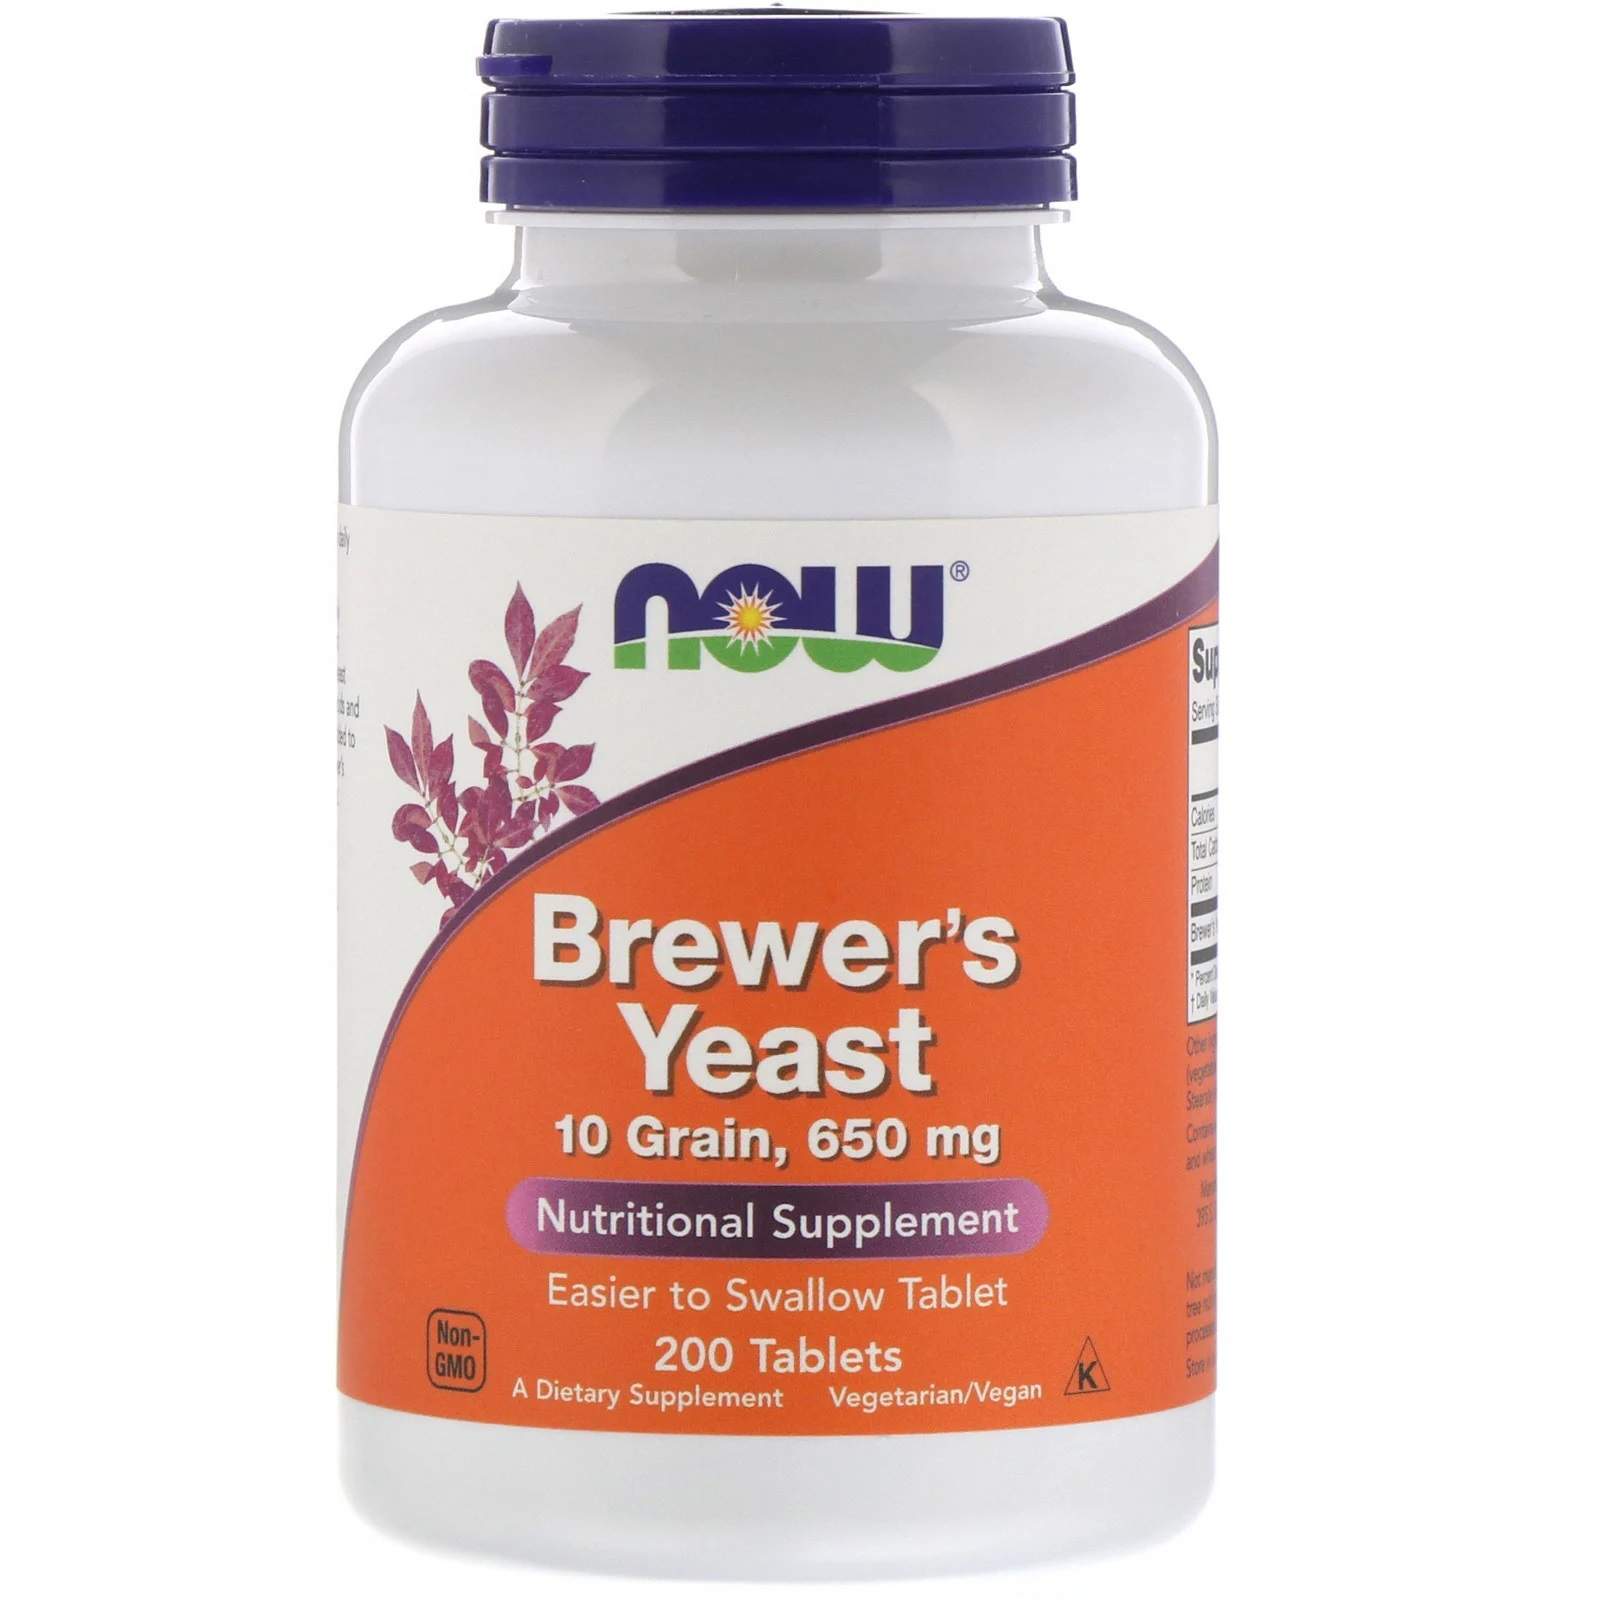 Brewer apos s Yeast 650 mg (200 Tablets ) Now Foods